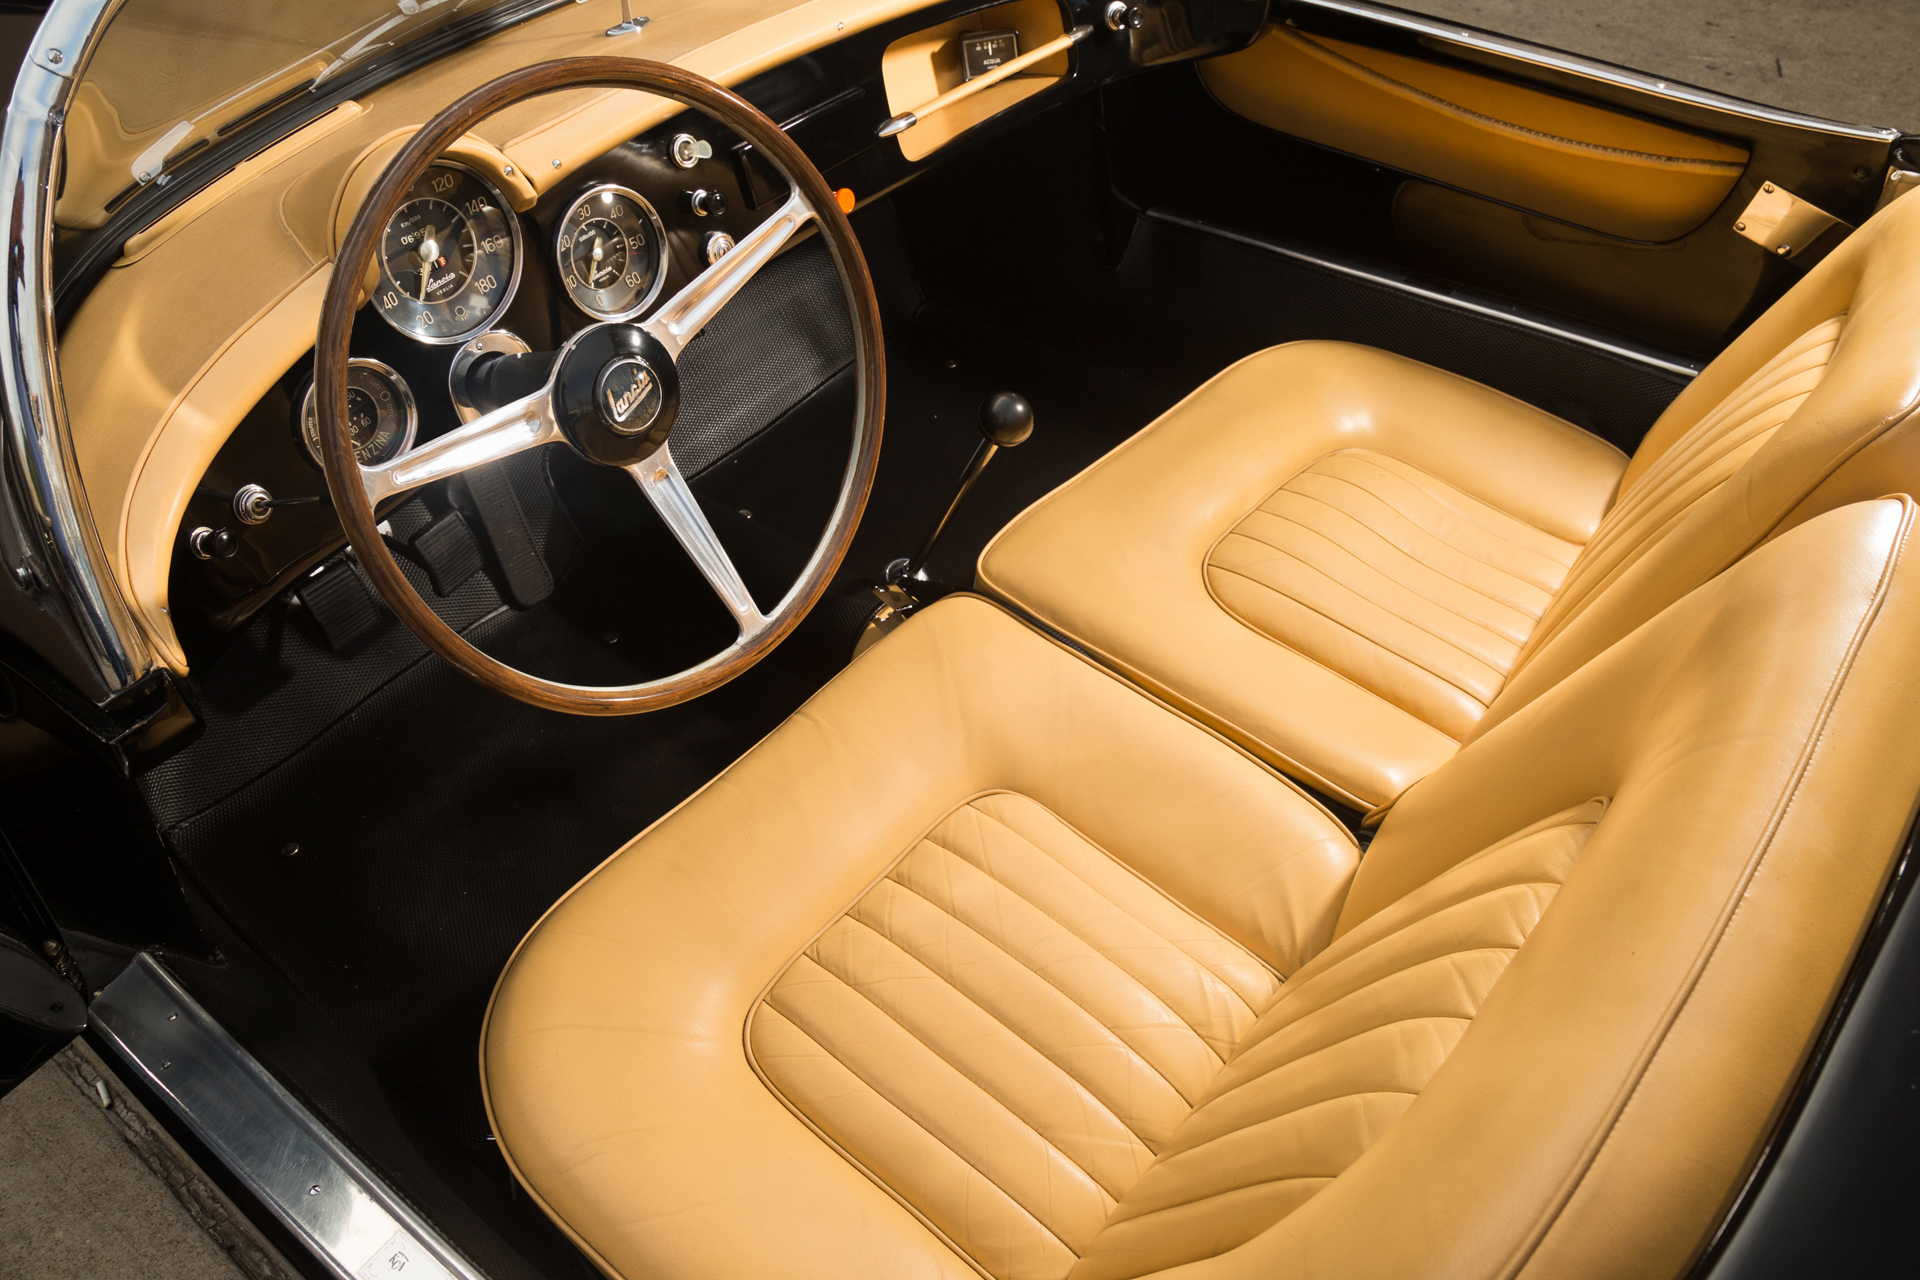 The Lancia Aurelia was created to be a driver's car in every sense of the word whether the four door Berlina or the more sports oriented coupé.